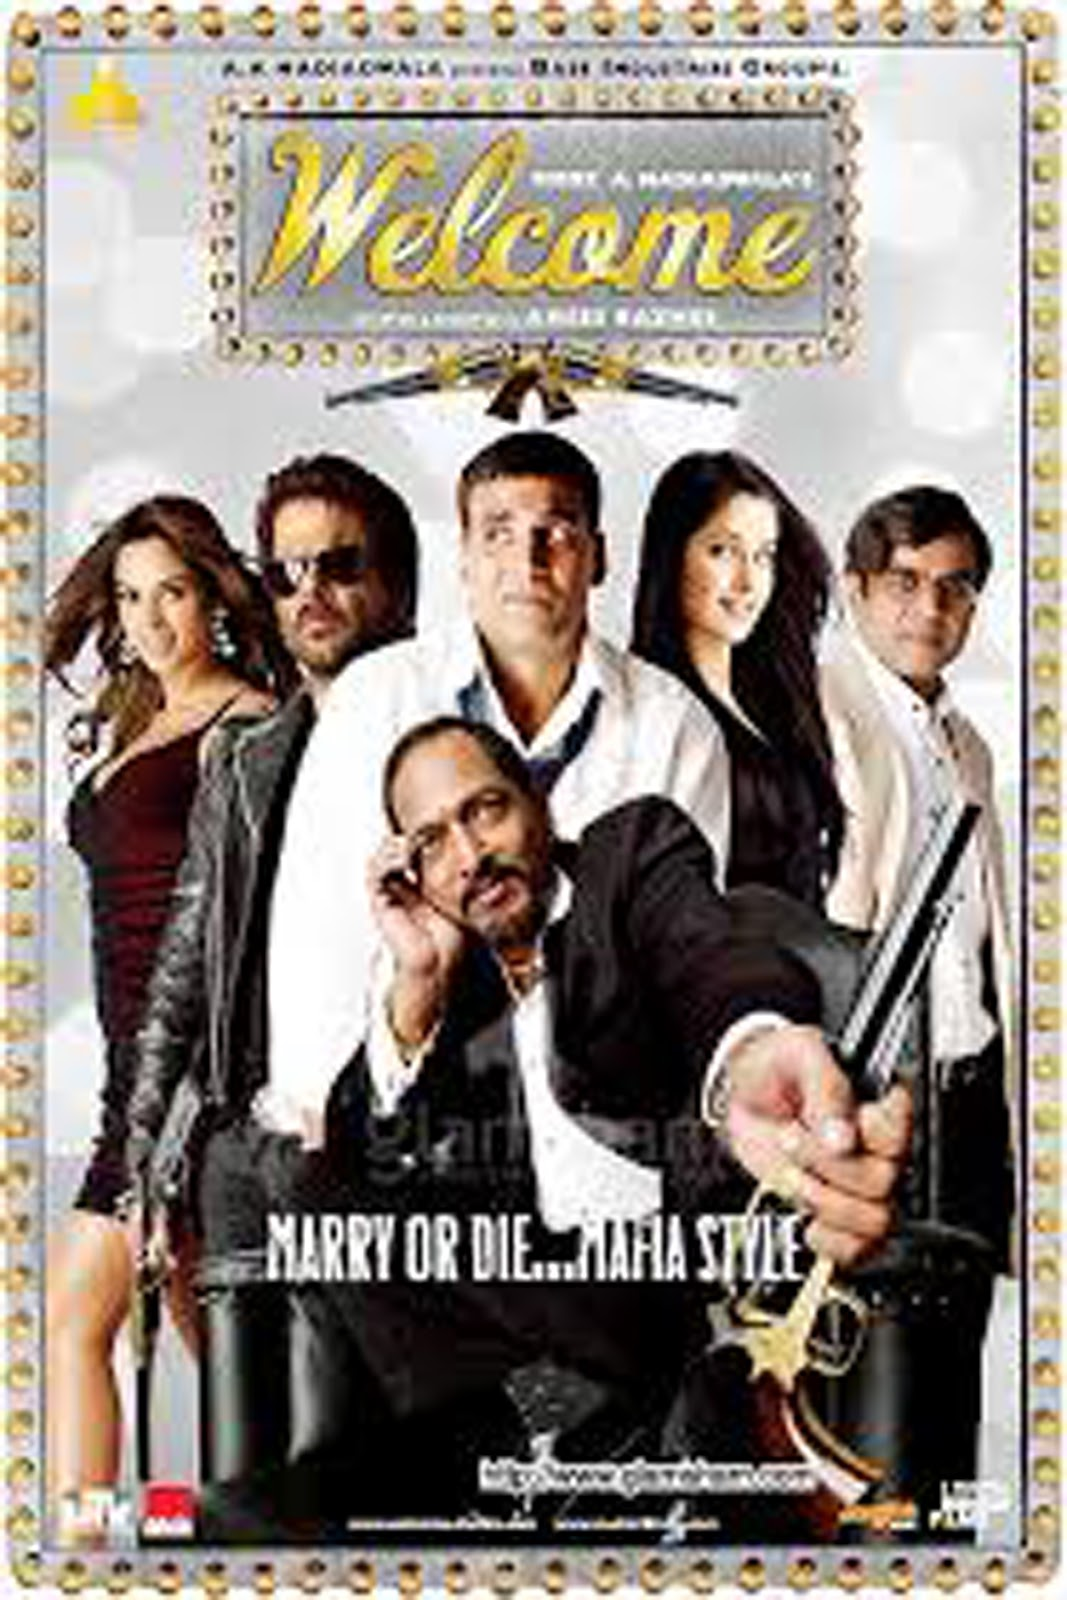 welcome 2007 movie download in hd